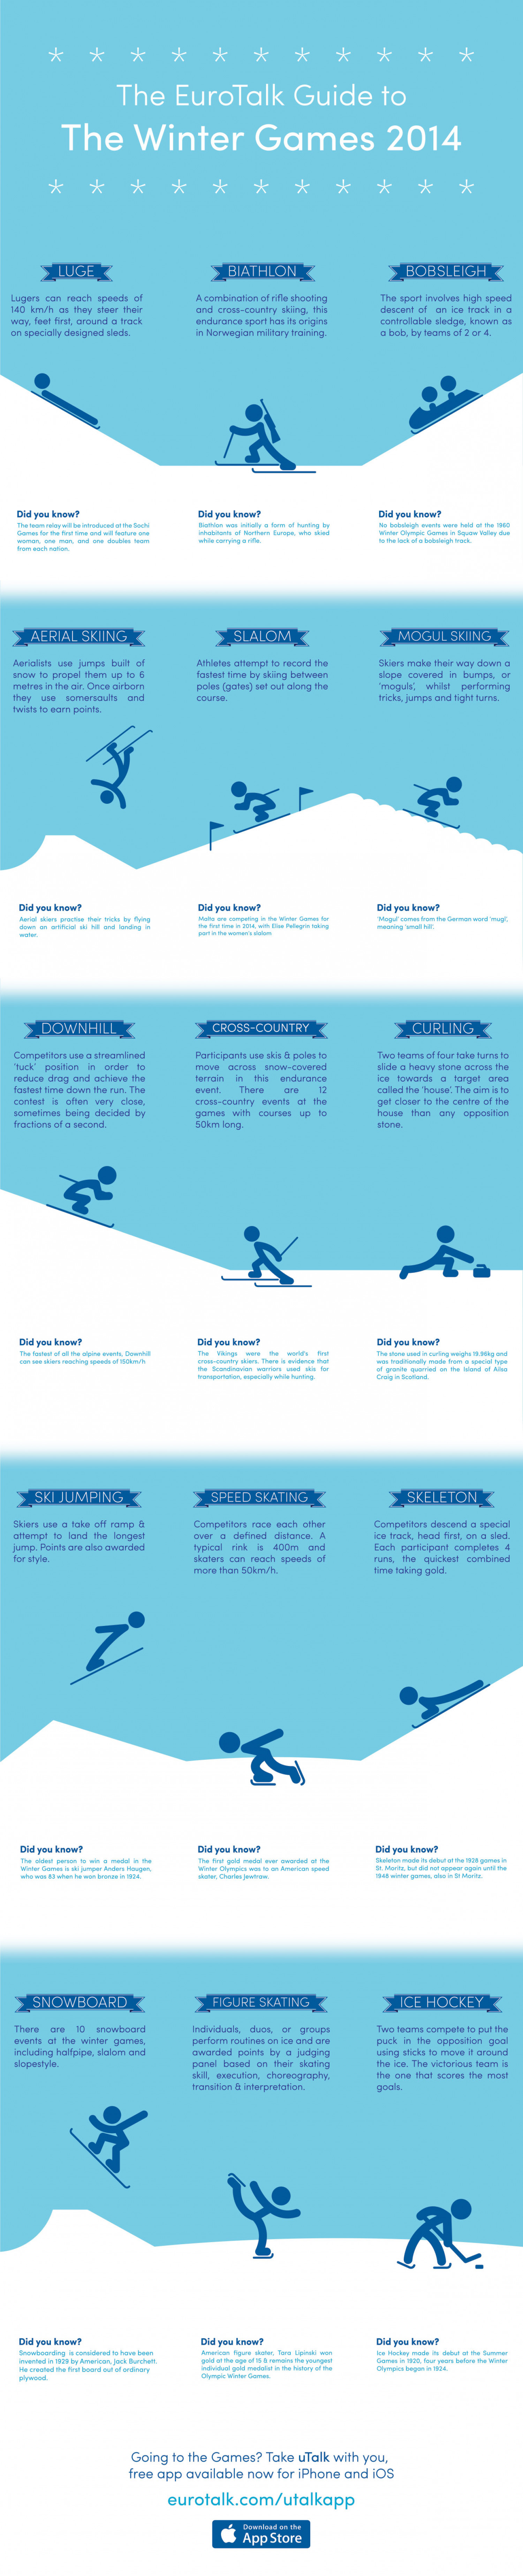 The EuroTalk Guide to the Winter Games 2014 Infographic